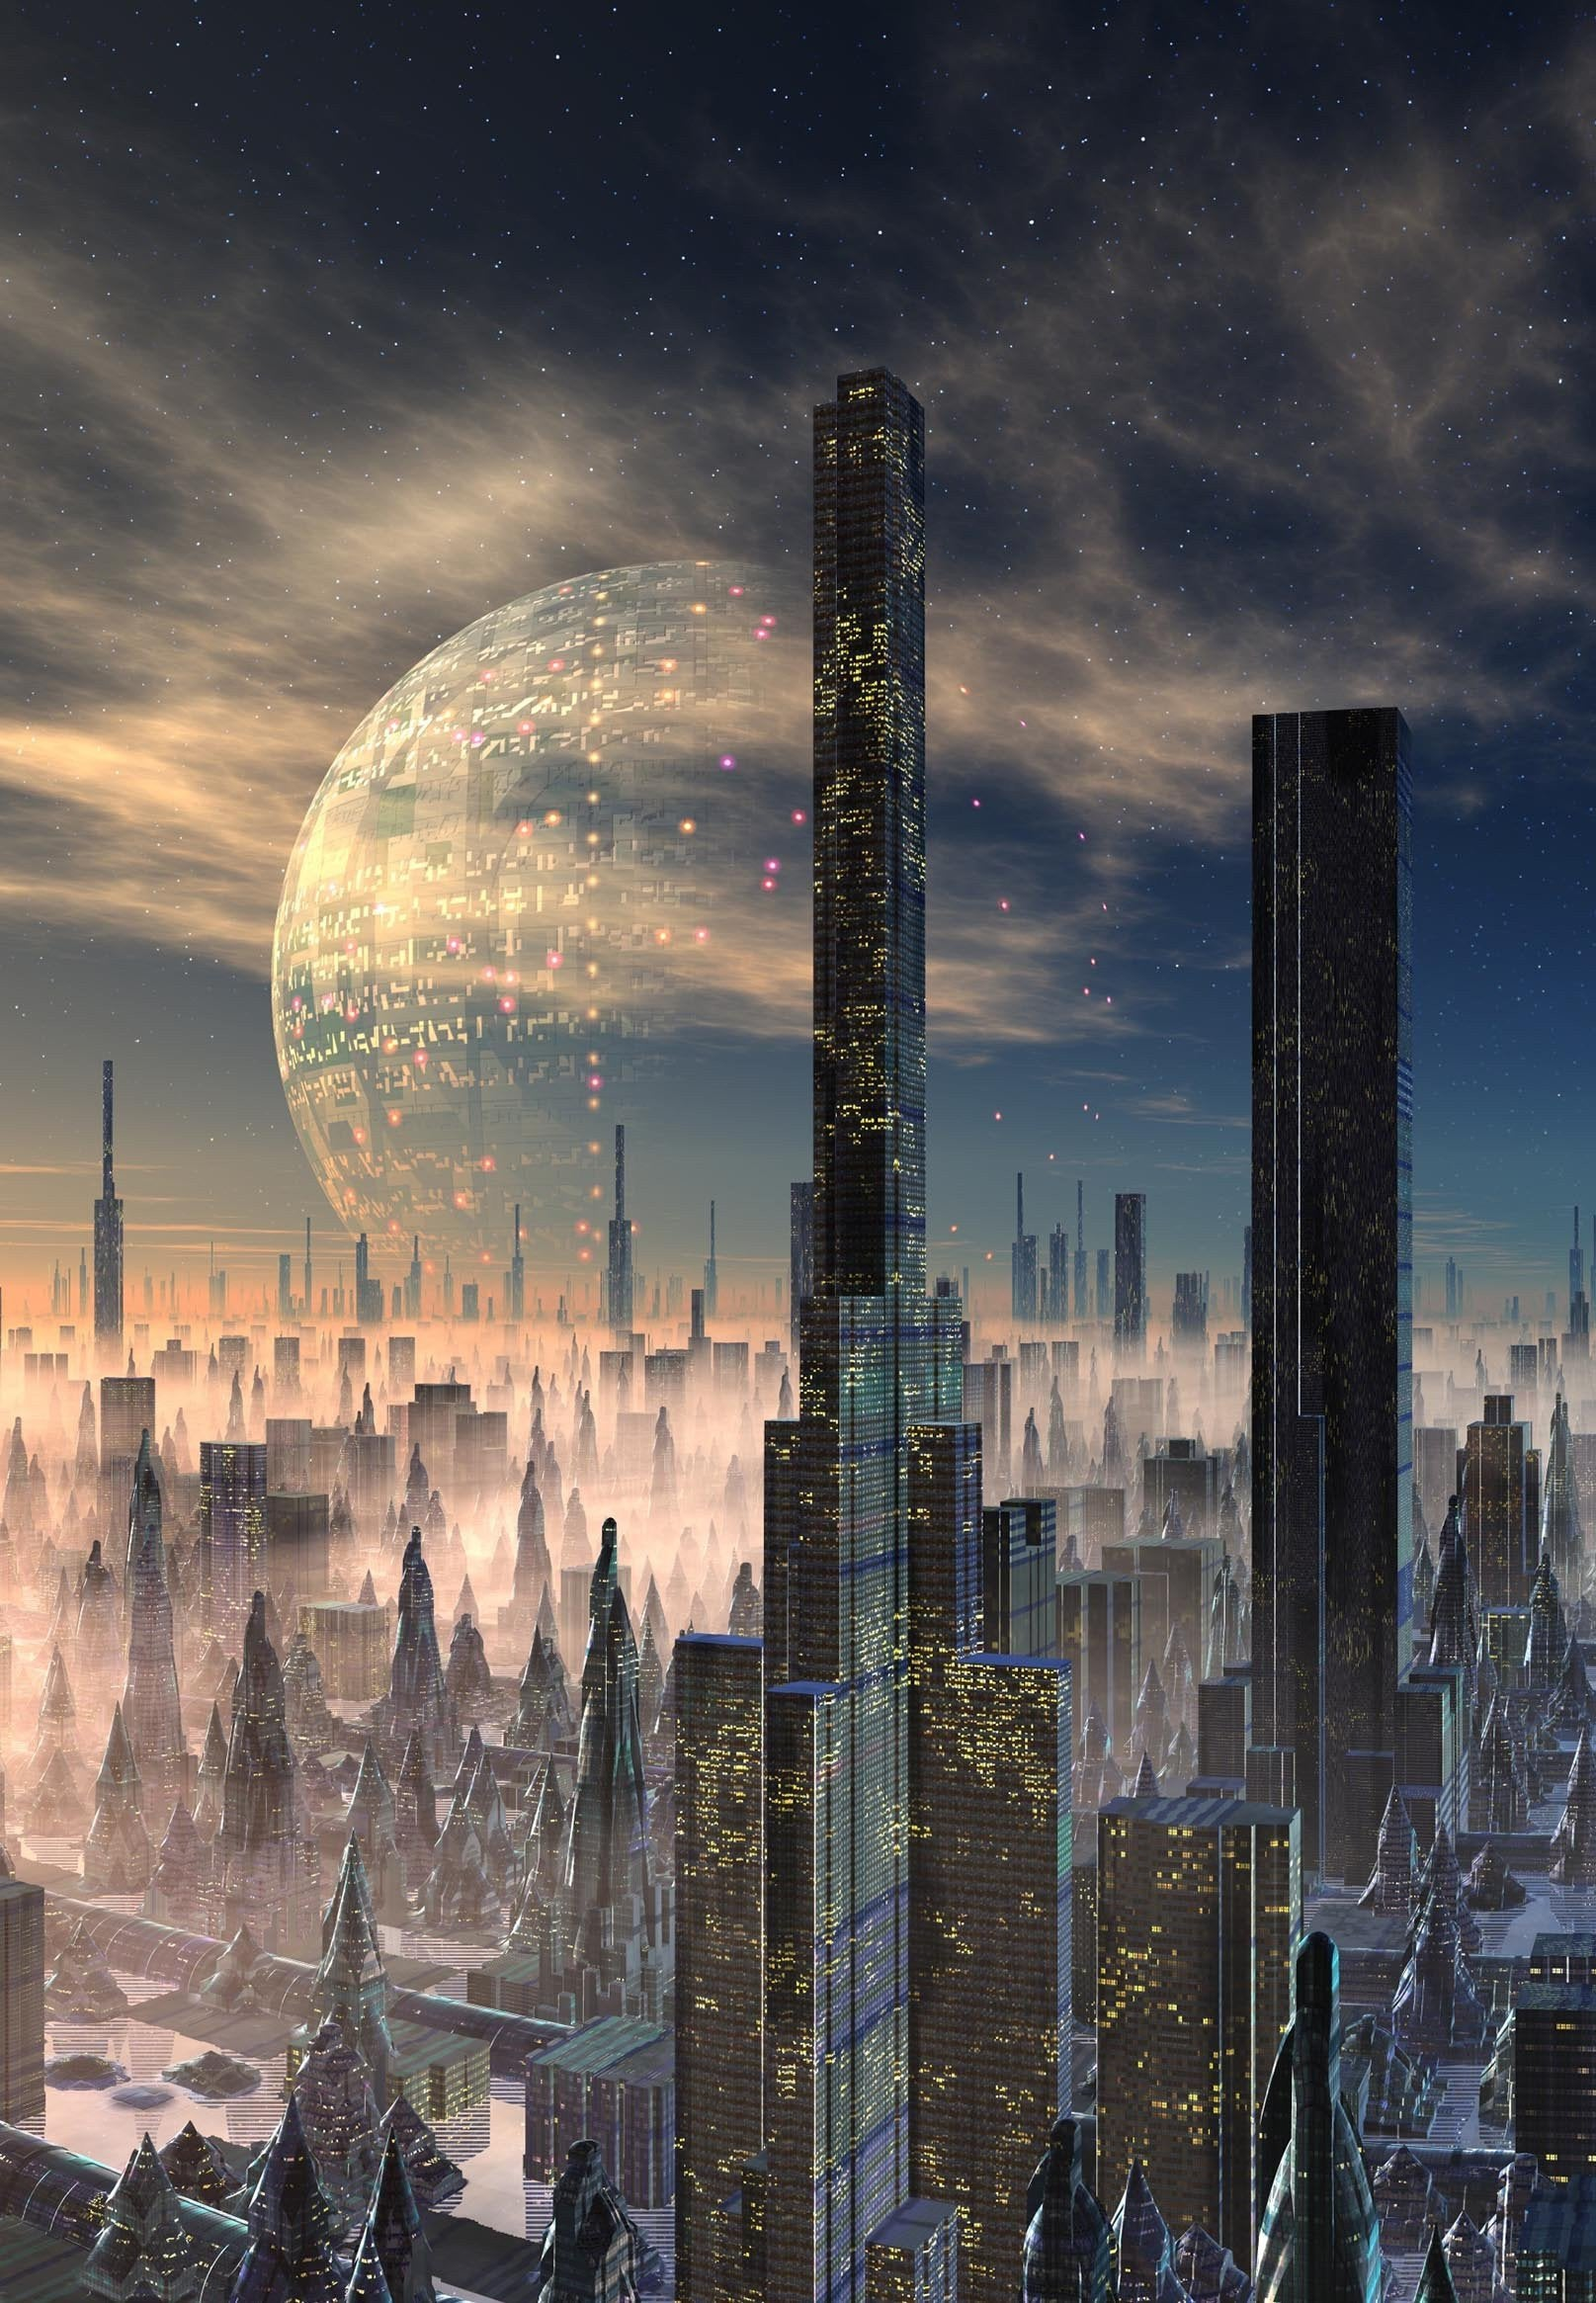 3D Exoplanet Buildings 1575 Stair Risers Wallpaper AJ Wallpaper